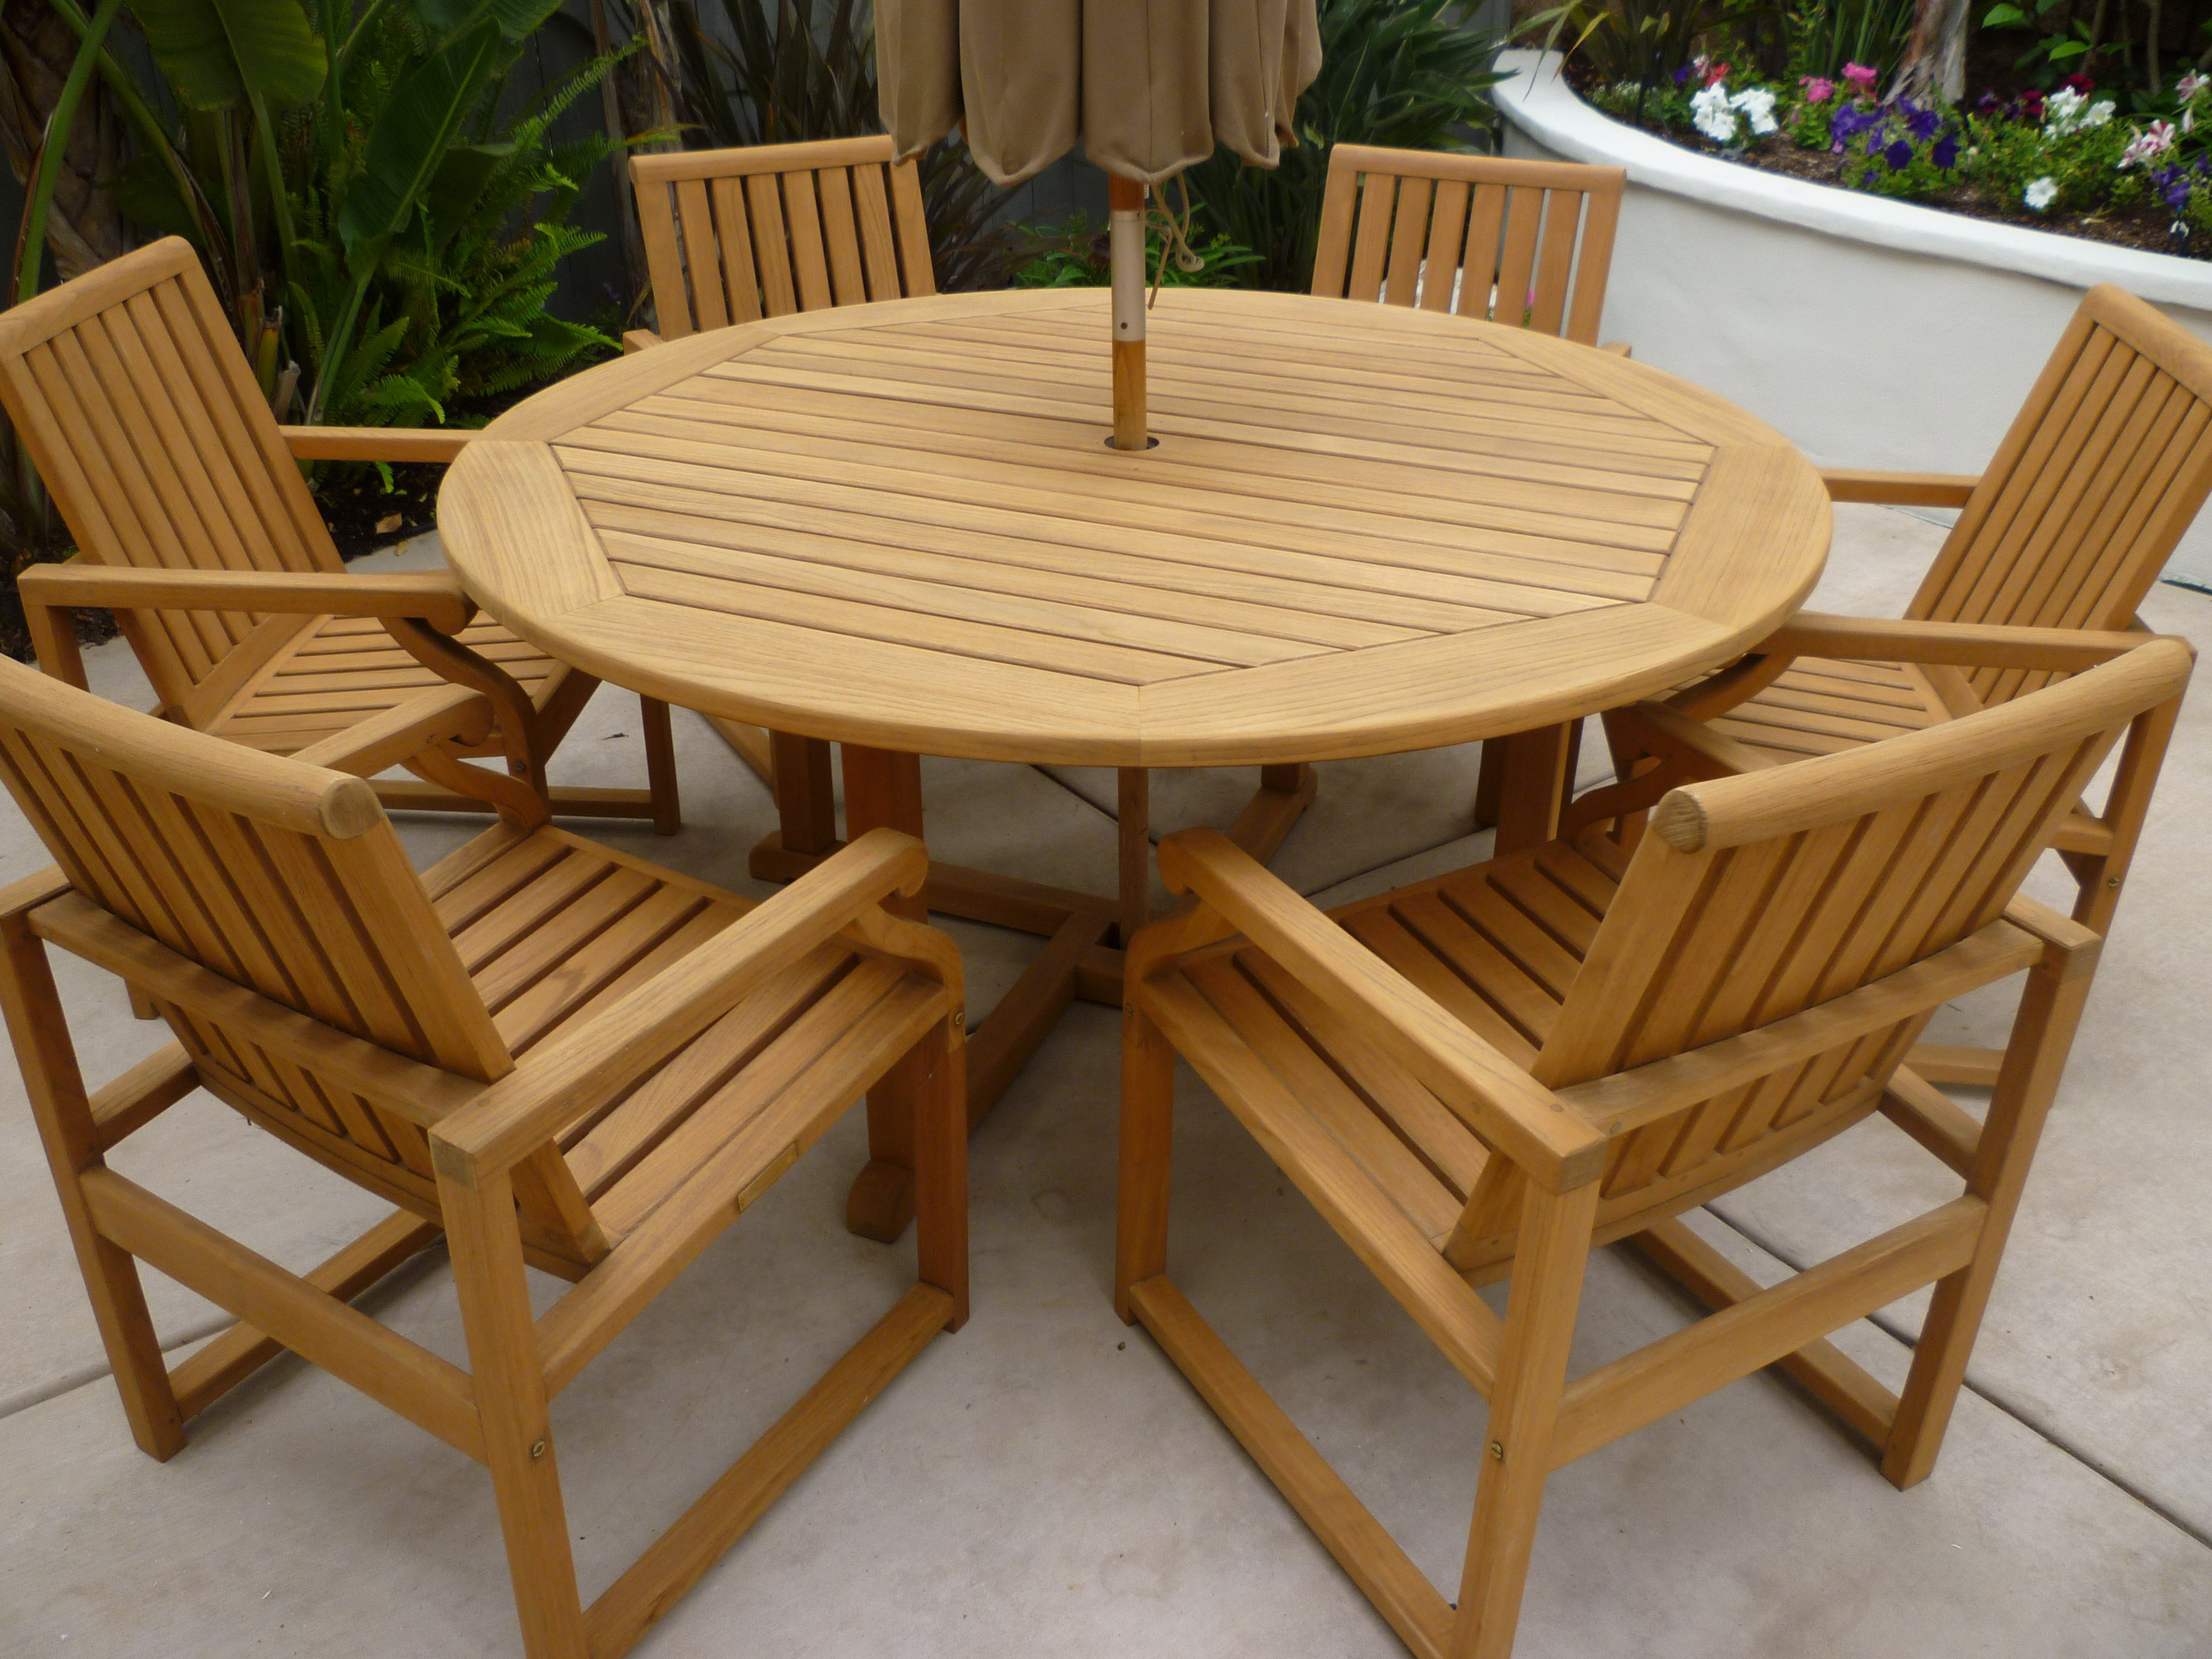 teak furniture 1 4000—3000 Home & Garden Pinterest